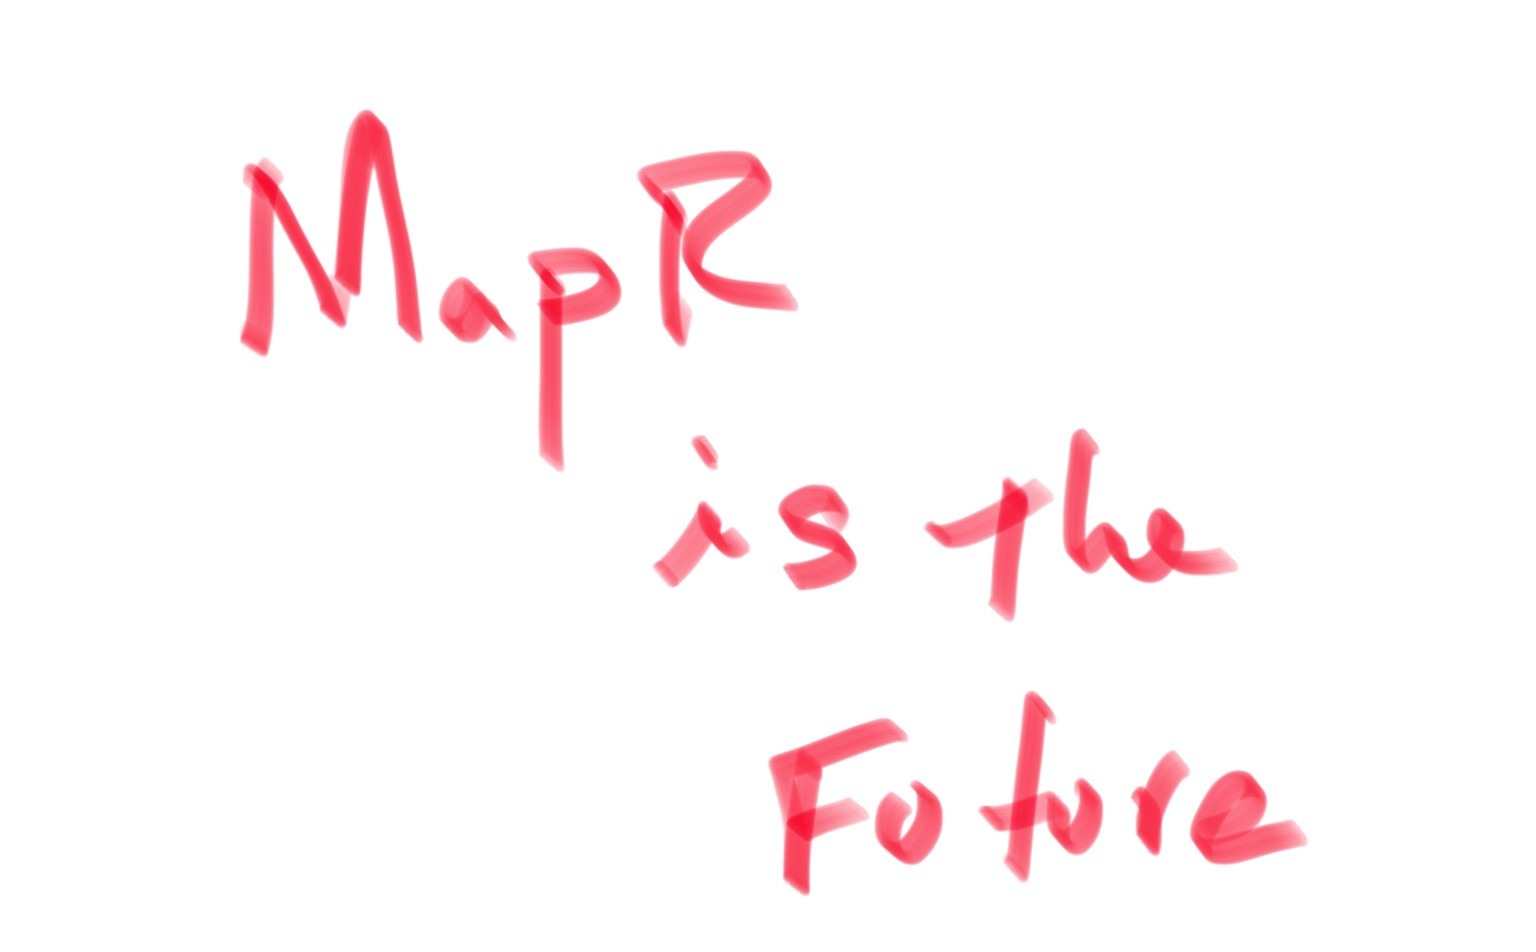 /why-did-marcelo-choose-mapr-577fd654aad5 feature image